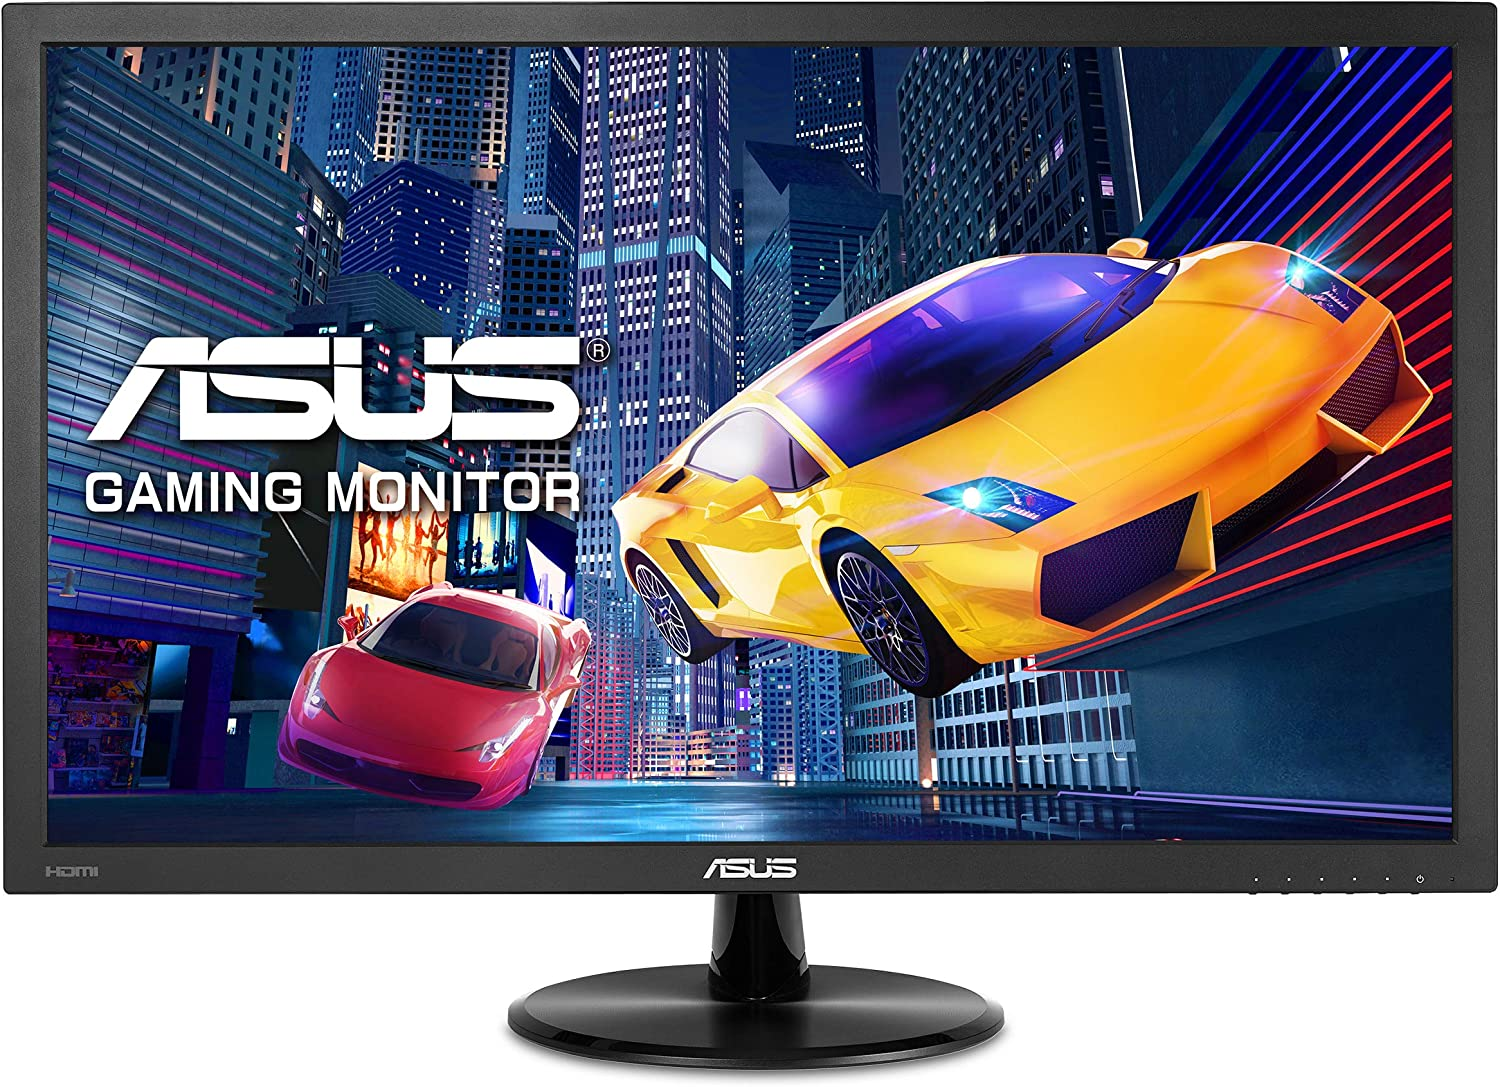 "Asus VP228HE 21.5"" Full HD 1920x1080 1ms HDMI VGA Eye Care Monitor,Blacklight"